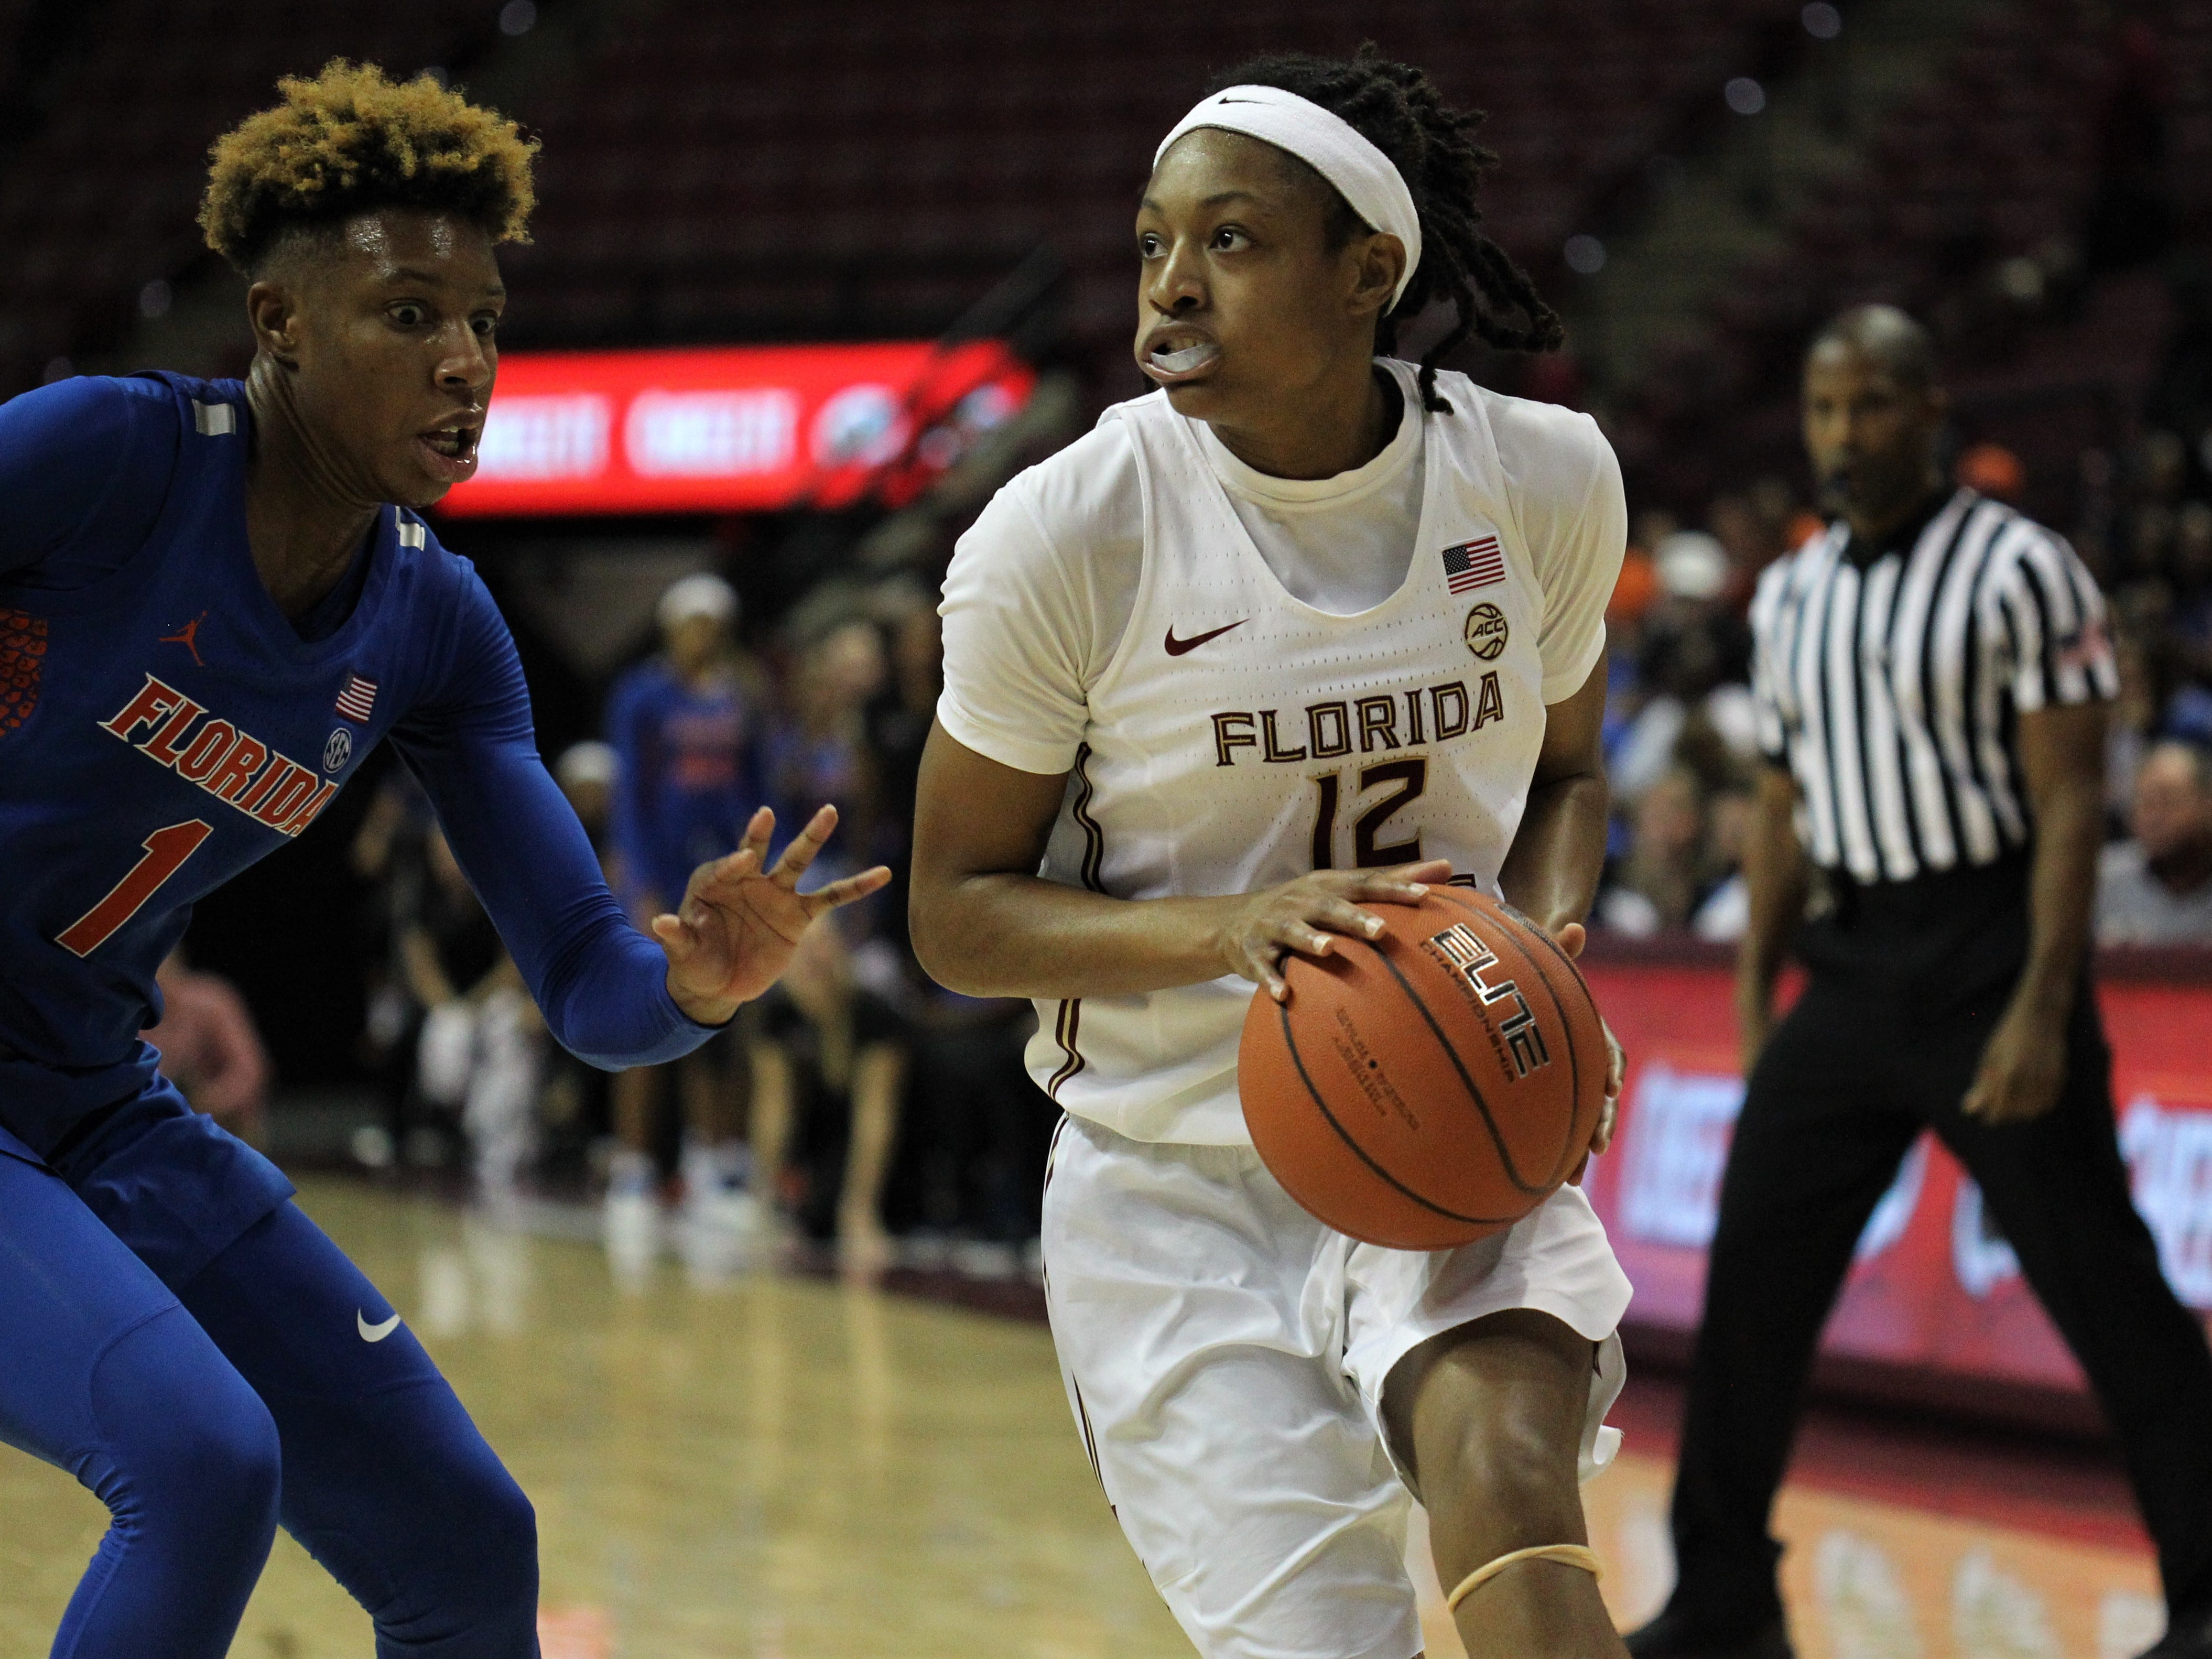 Florida State's Nicki Ekhomu drives during the second half of the Seminoles' game against Florida at the Tucker Civic Center on Nov. 11, 2018.